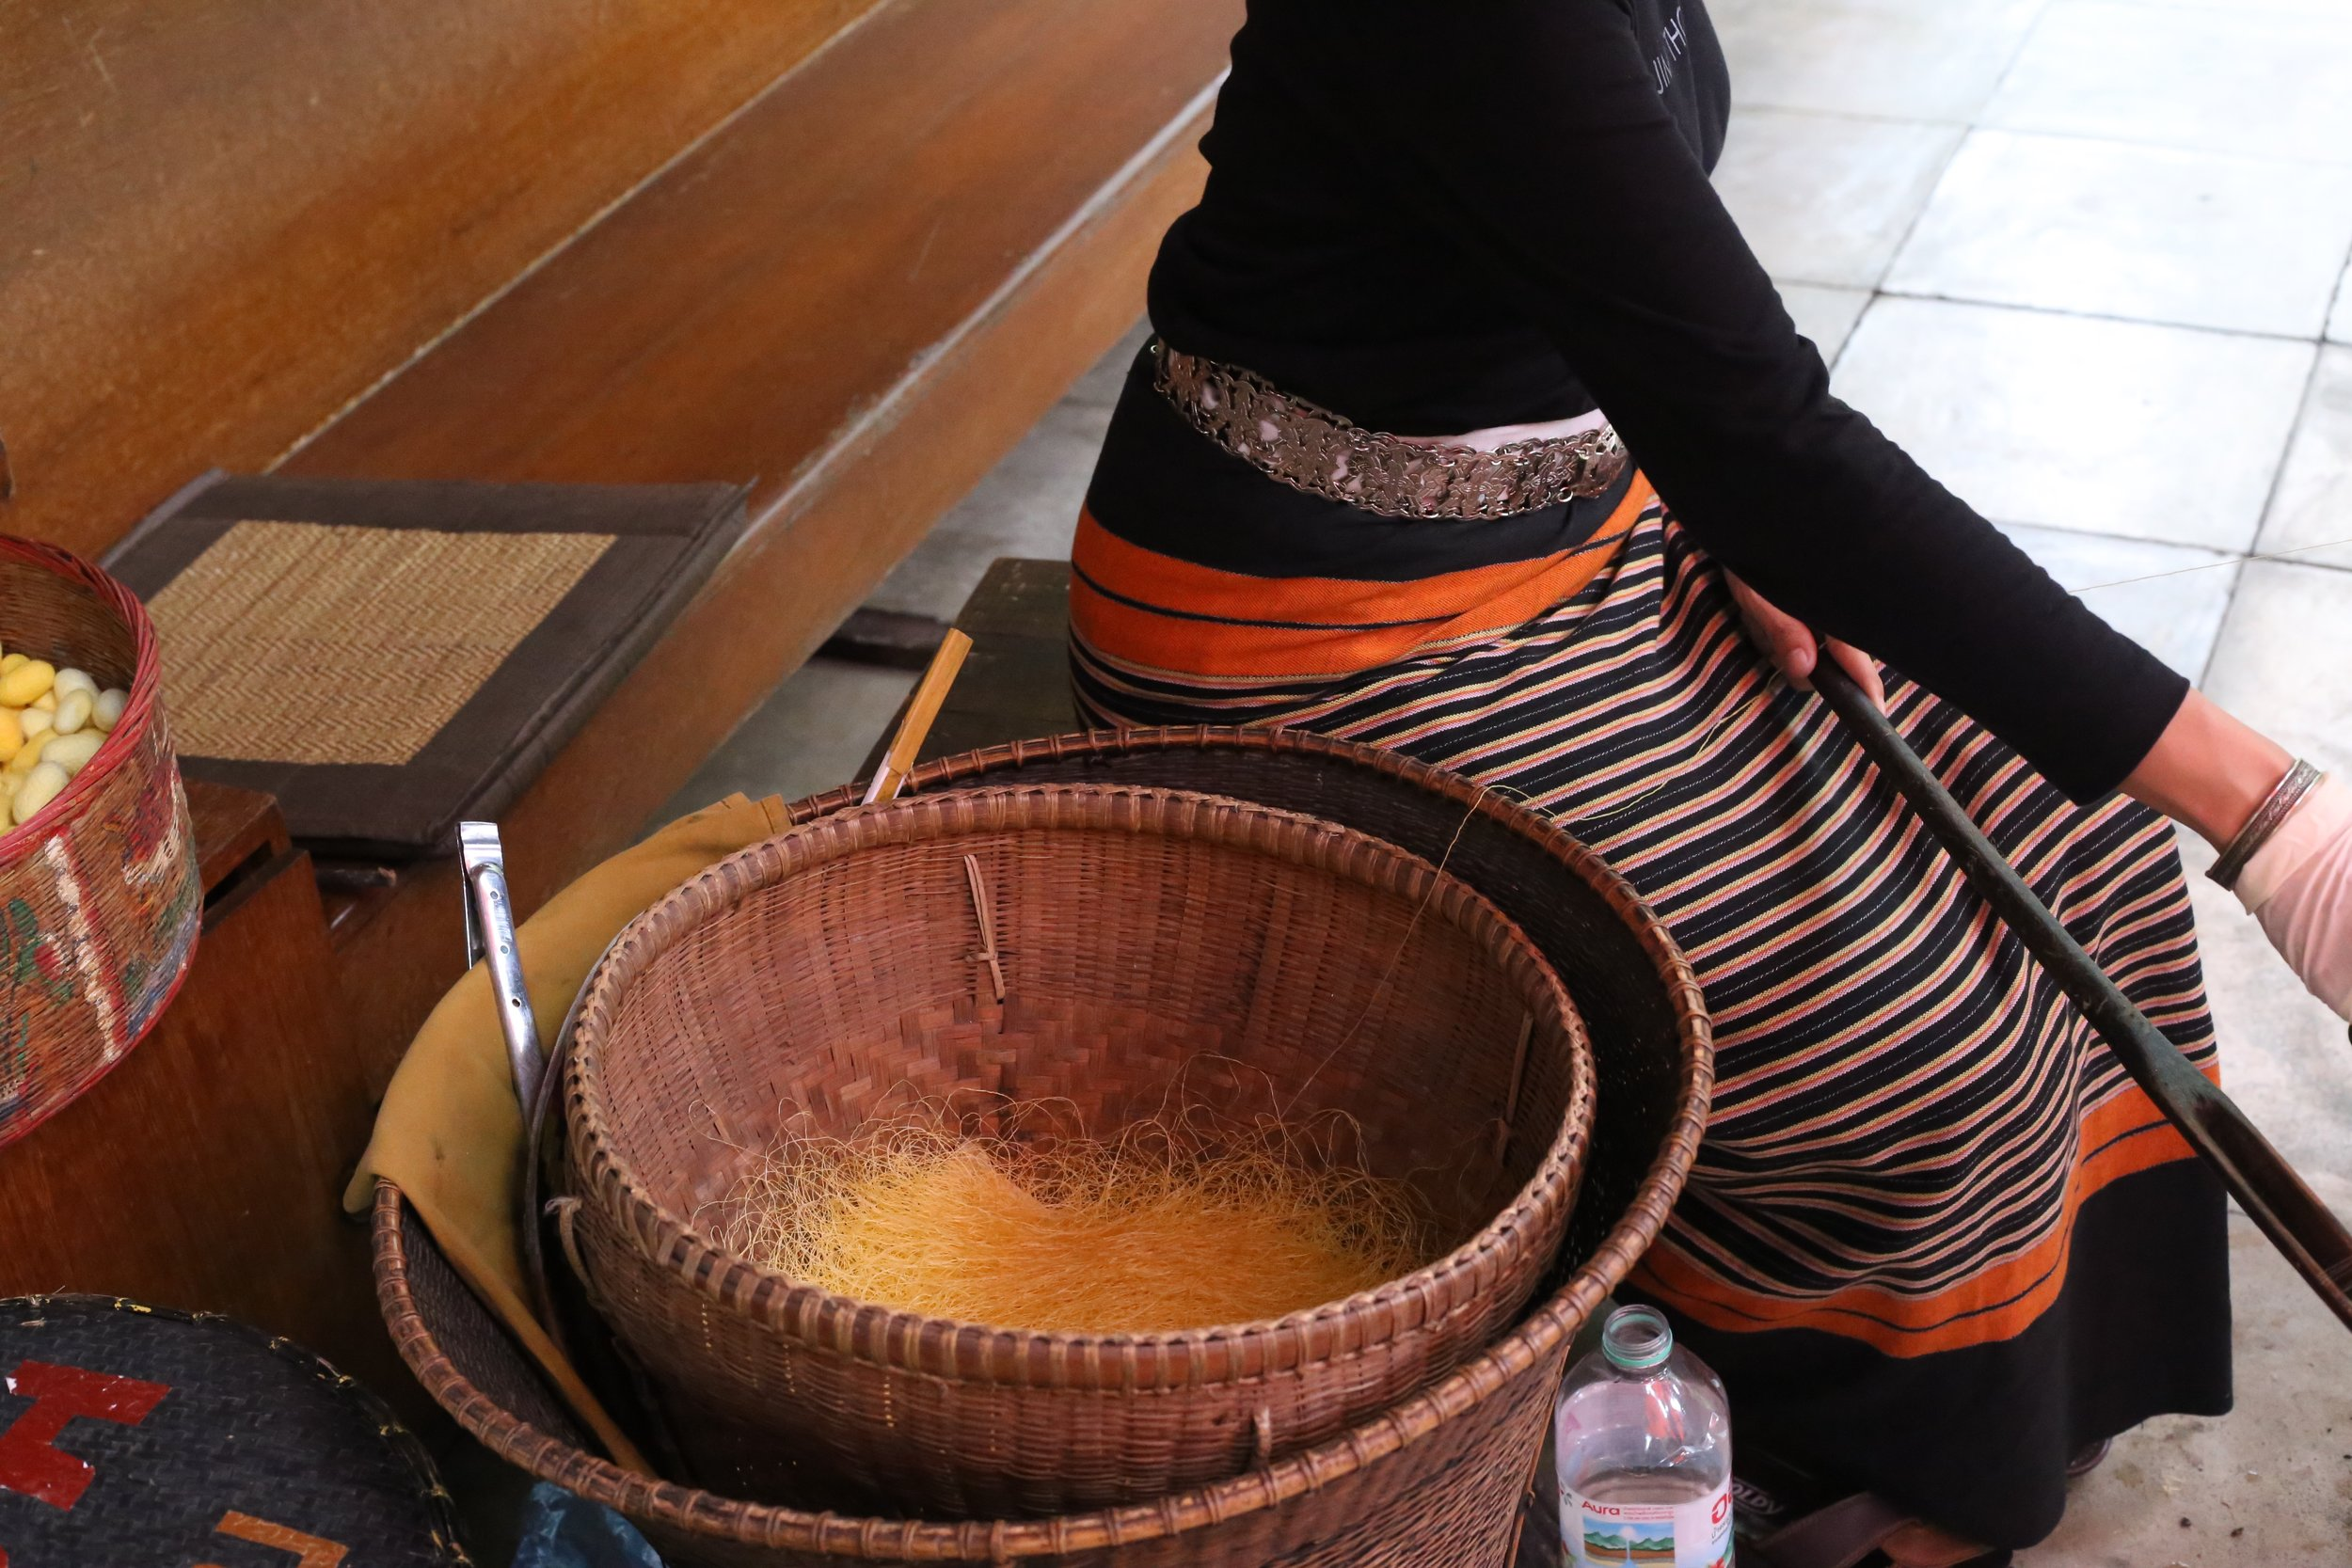 this woman was taking a basket of silk and using the spool to her right to spin it into scarves, shirts and other things for the jim thompson store and foundation.